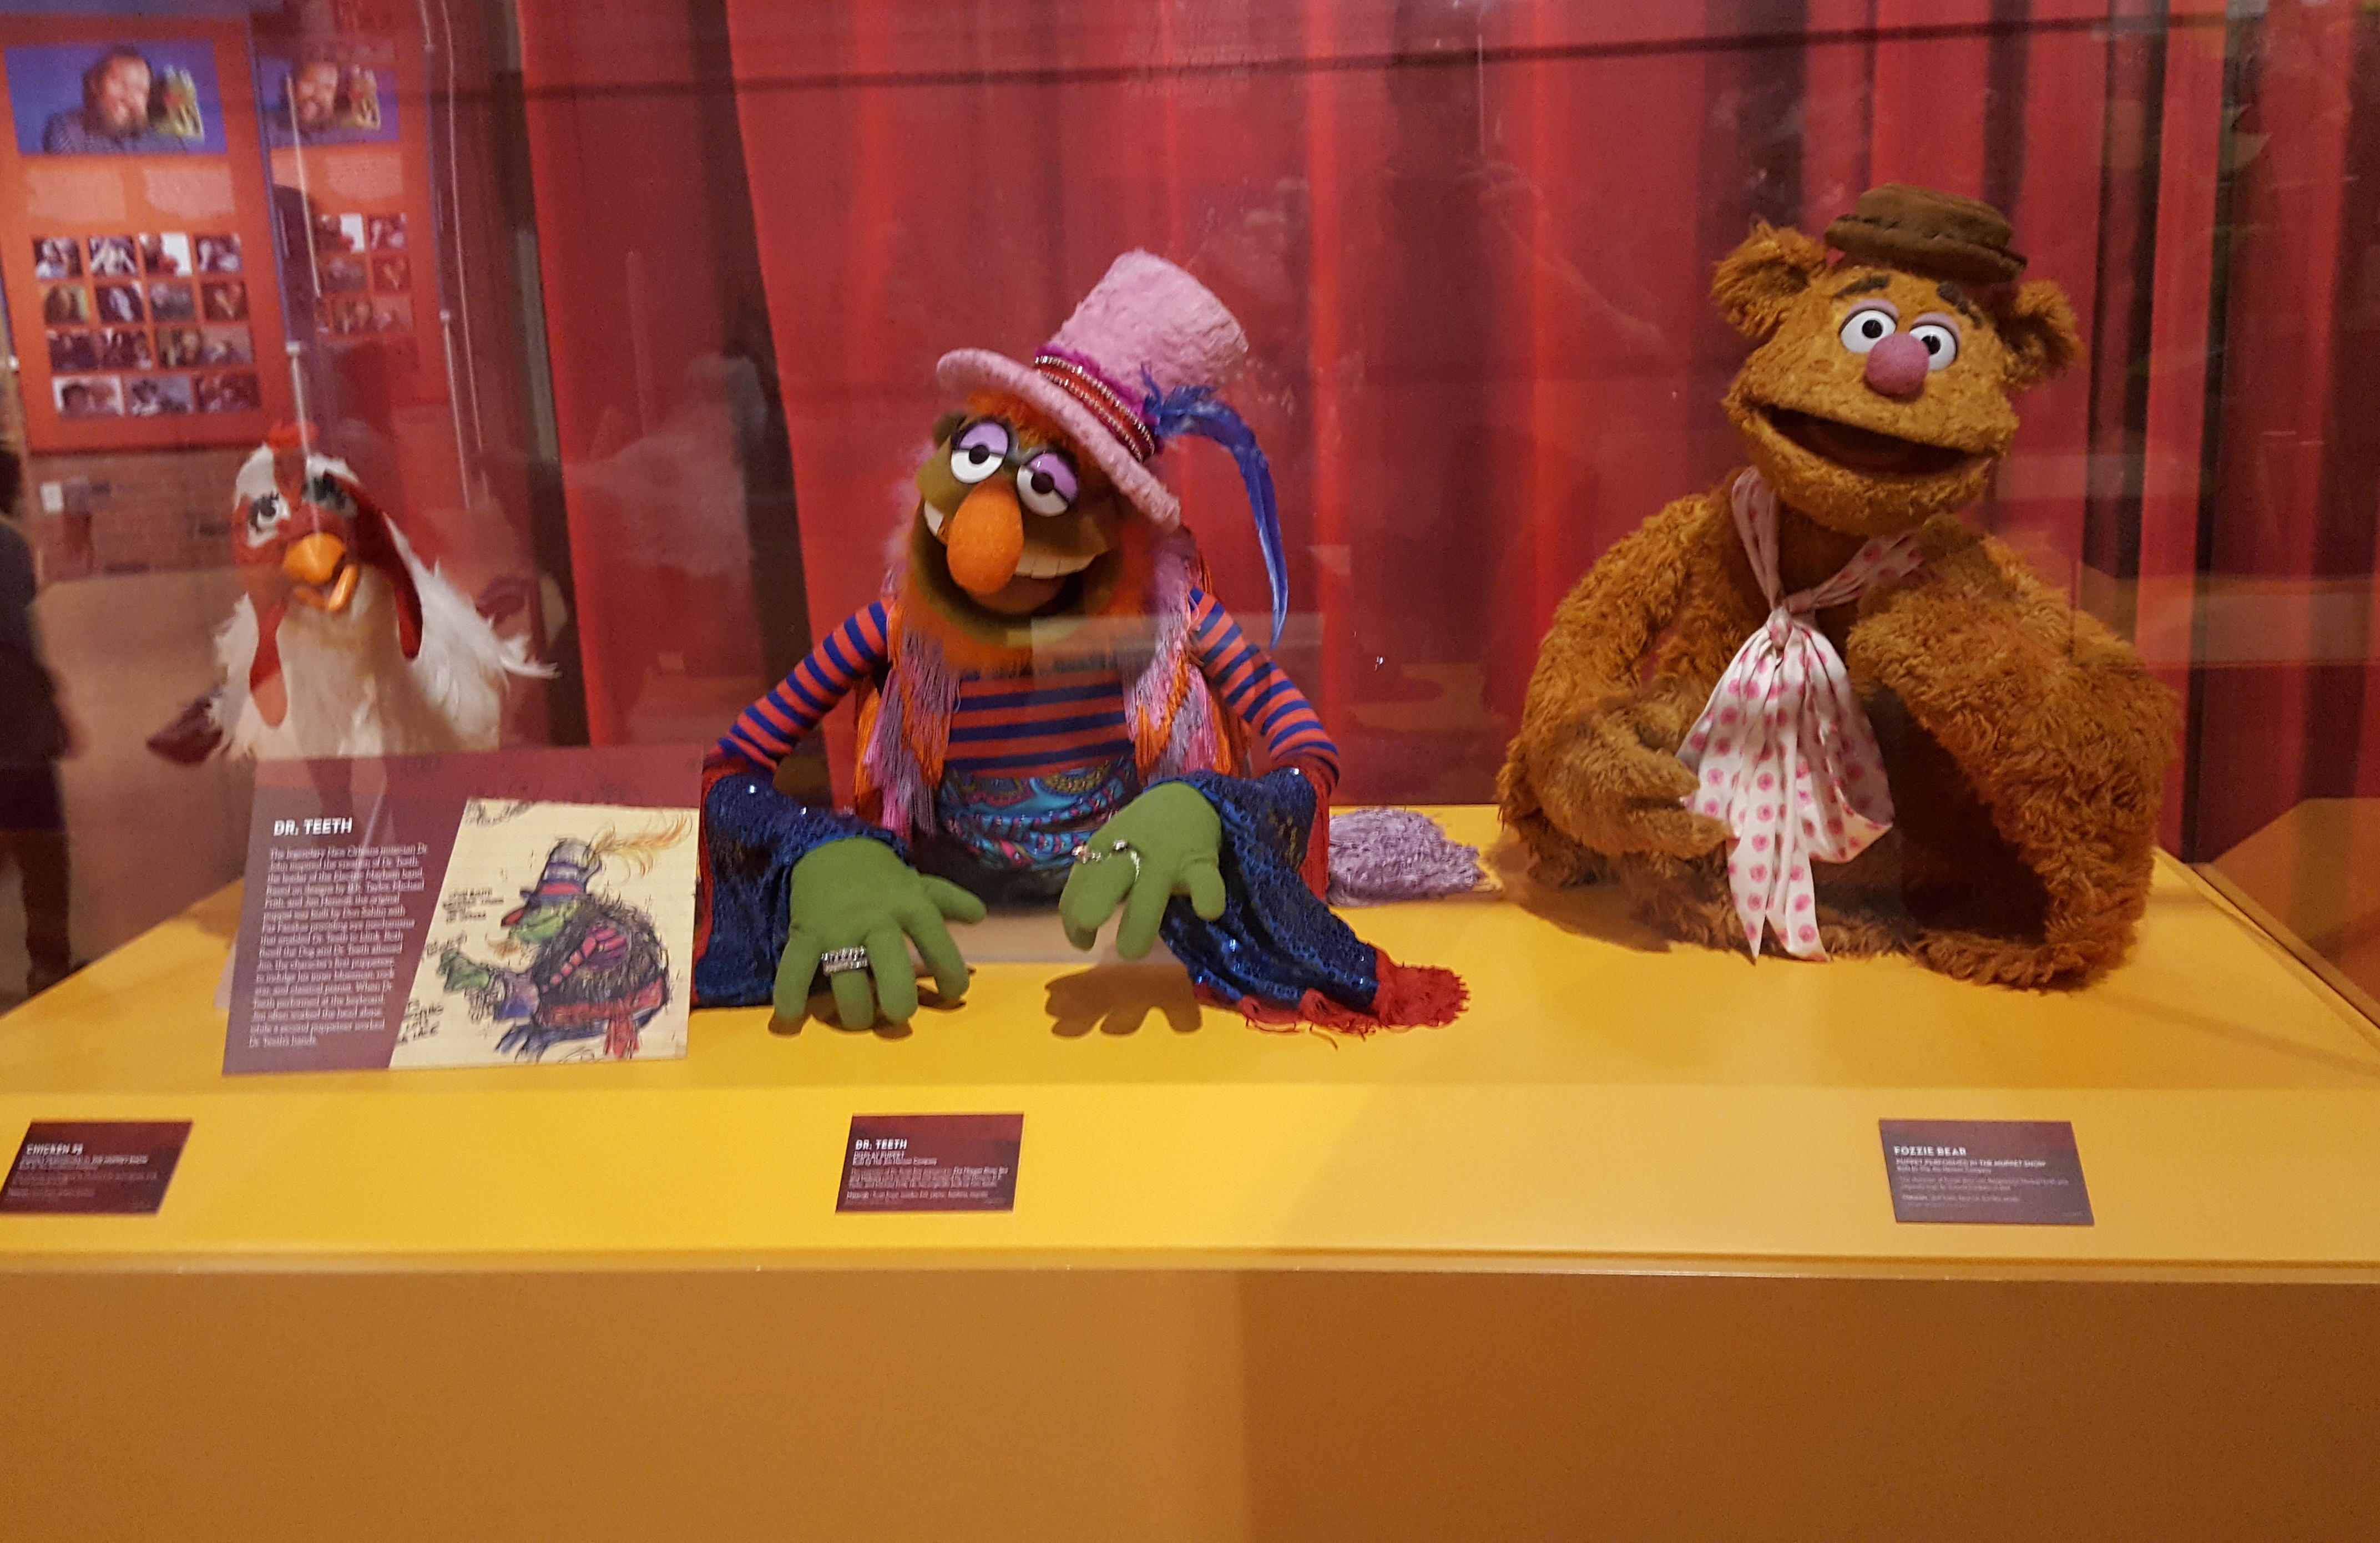 Selection of Muppets from the Jim Henson Collection at the Center for Puppetry Arts